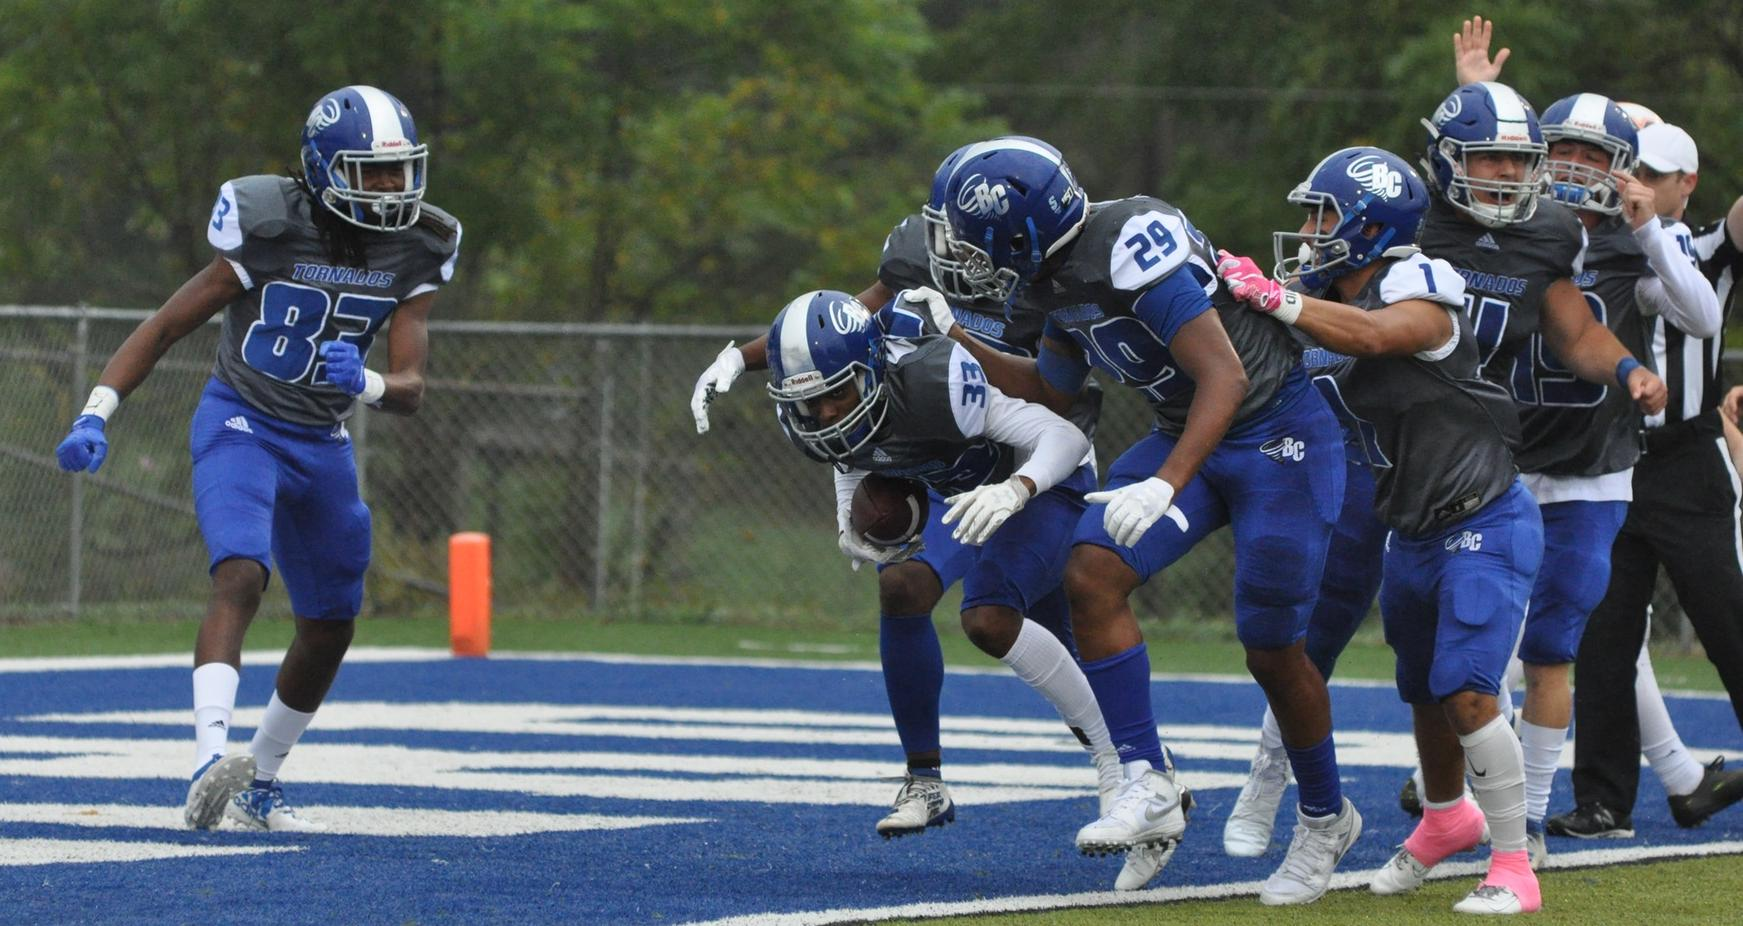 The Brevard College special teams unit celebrates a fumble recovery touchdown in Saturday's 22-10 triumph over Maryville College (Courtesy of Tommy Moss).